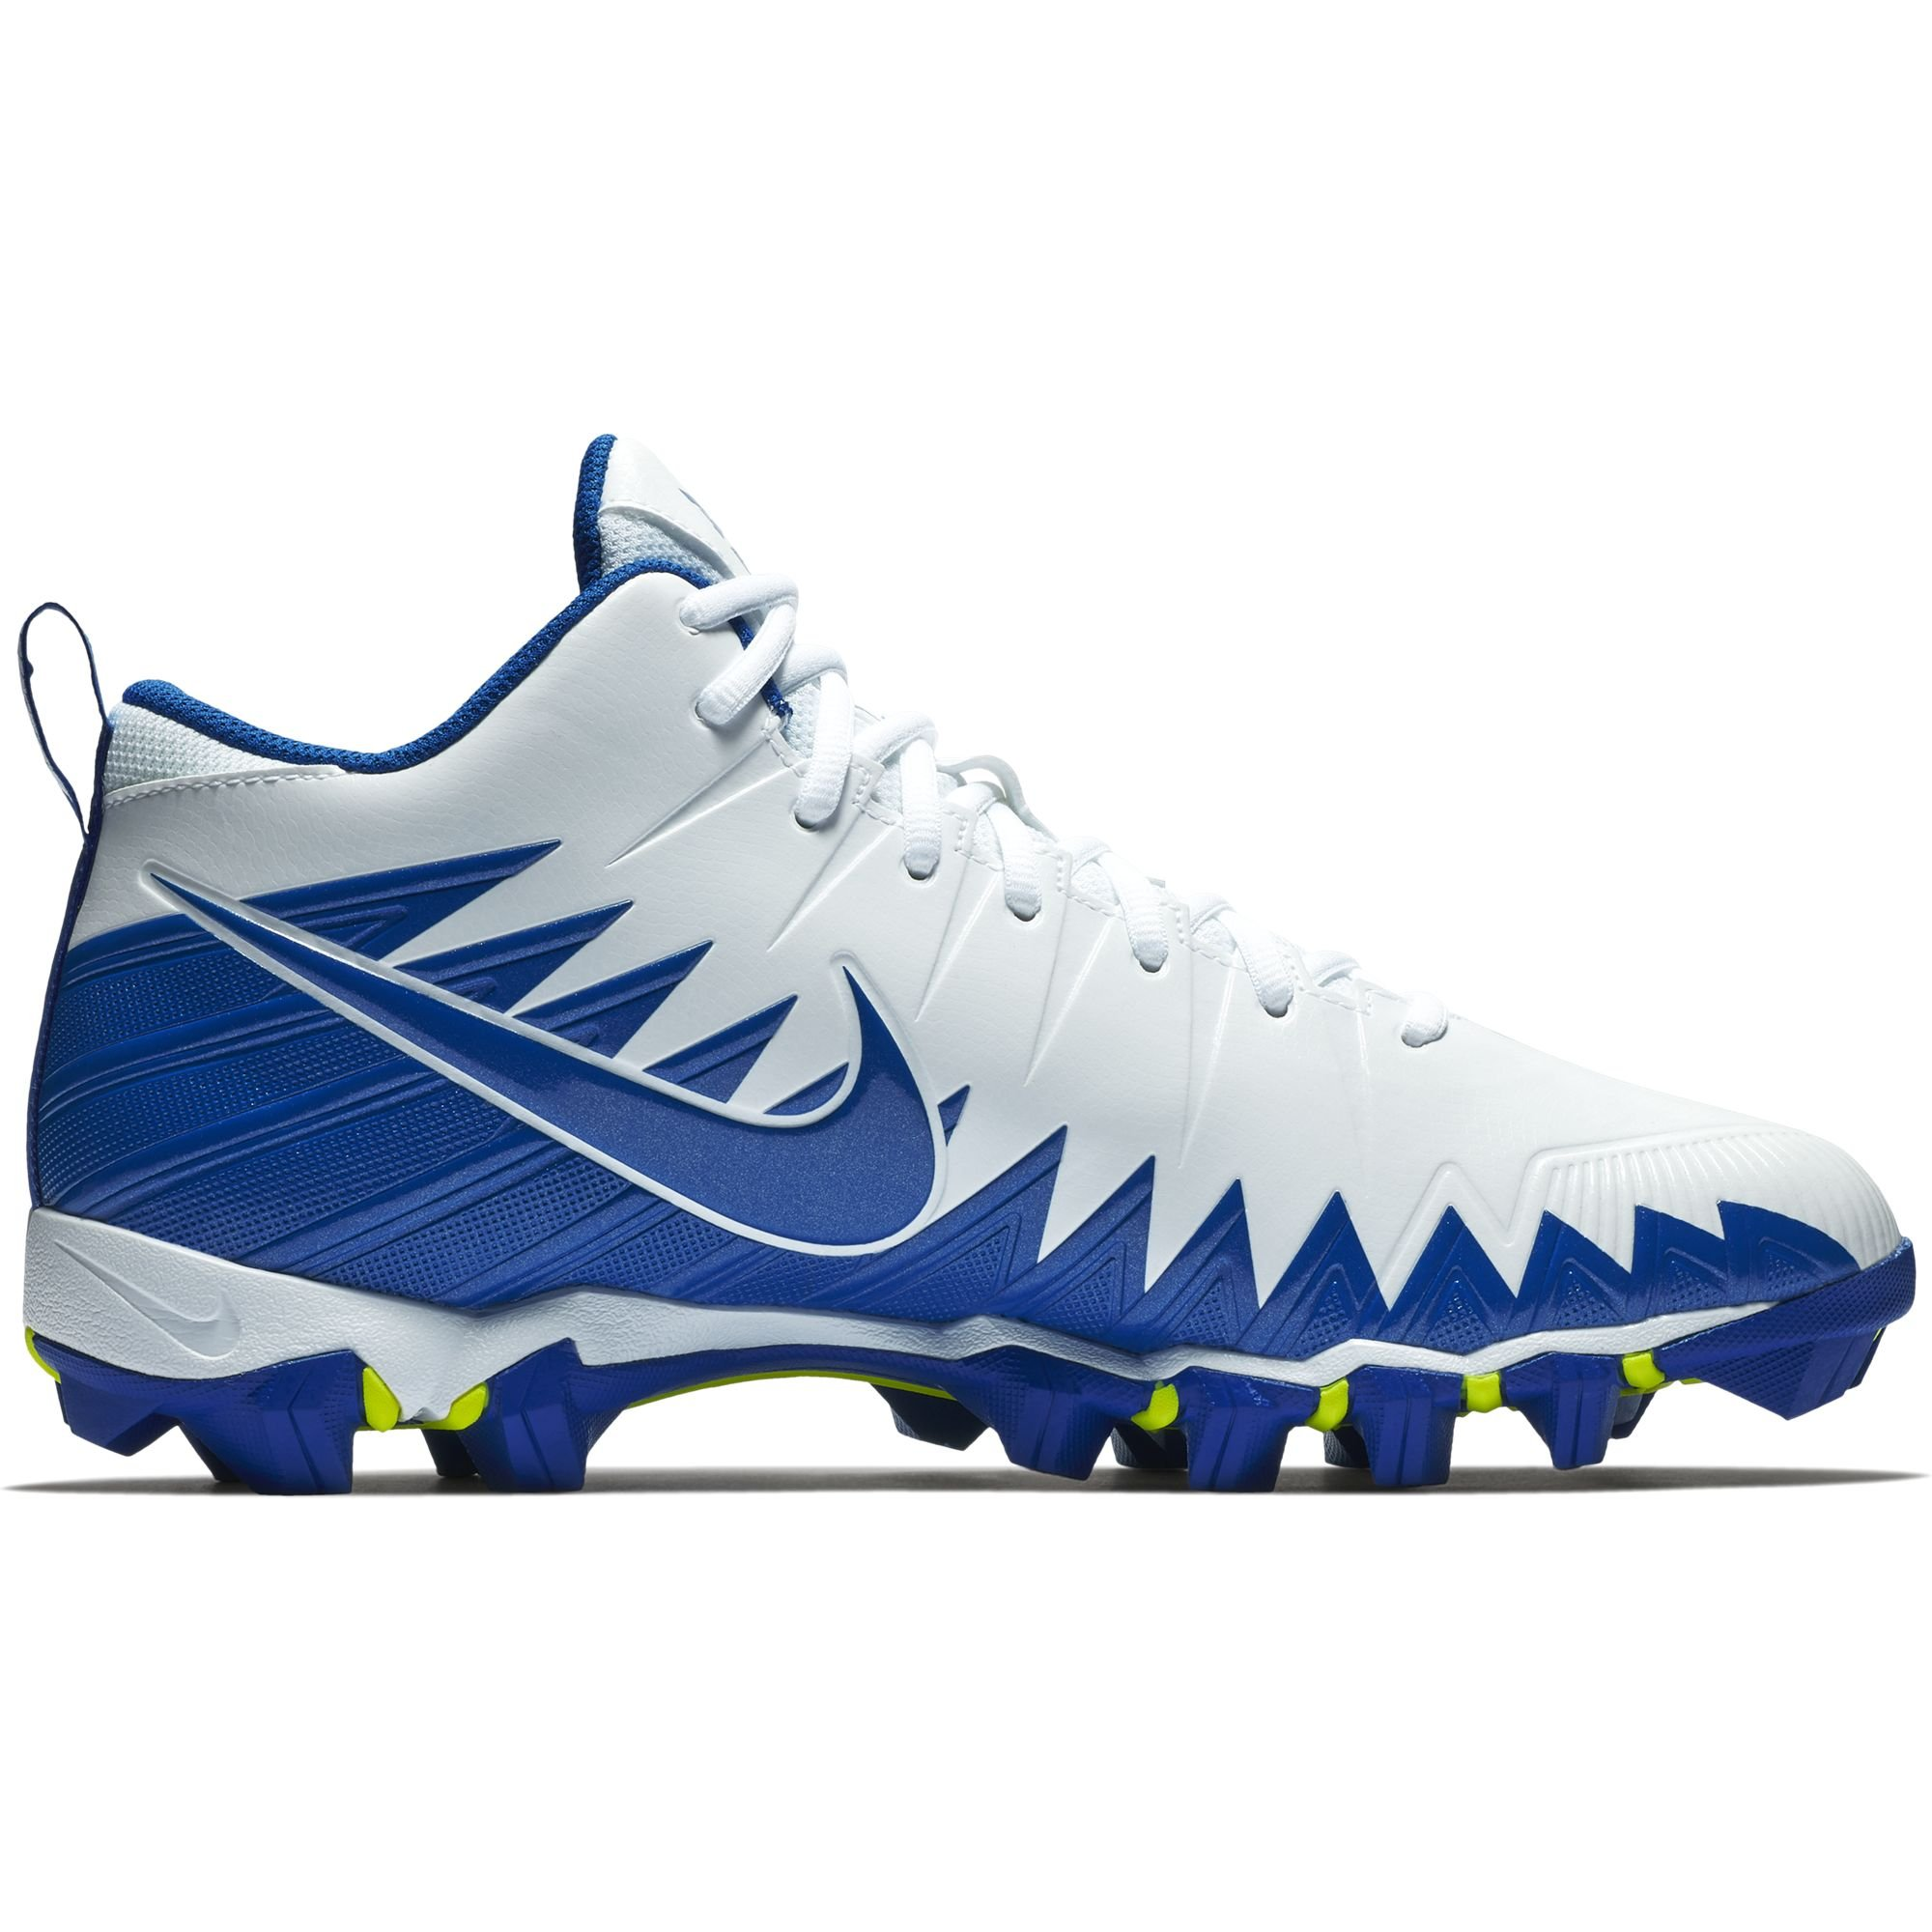 low priced 6589e f4d59 Galleon - Nike Men s Alpha Menace Shark Football Cleat White Game Royal Size  12 M US